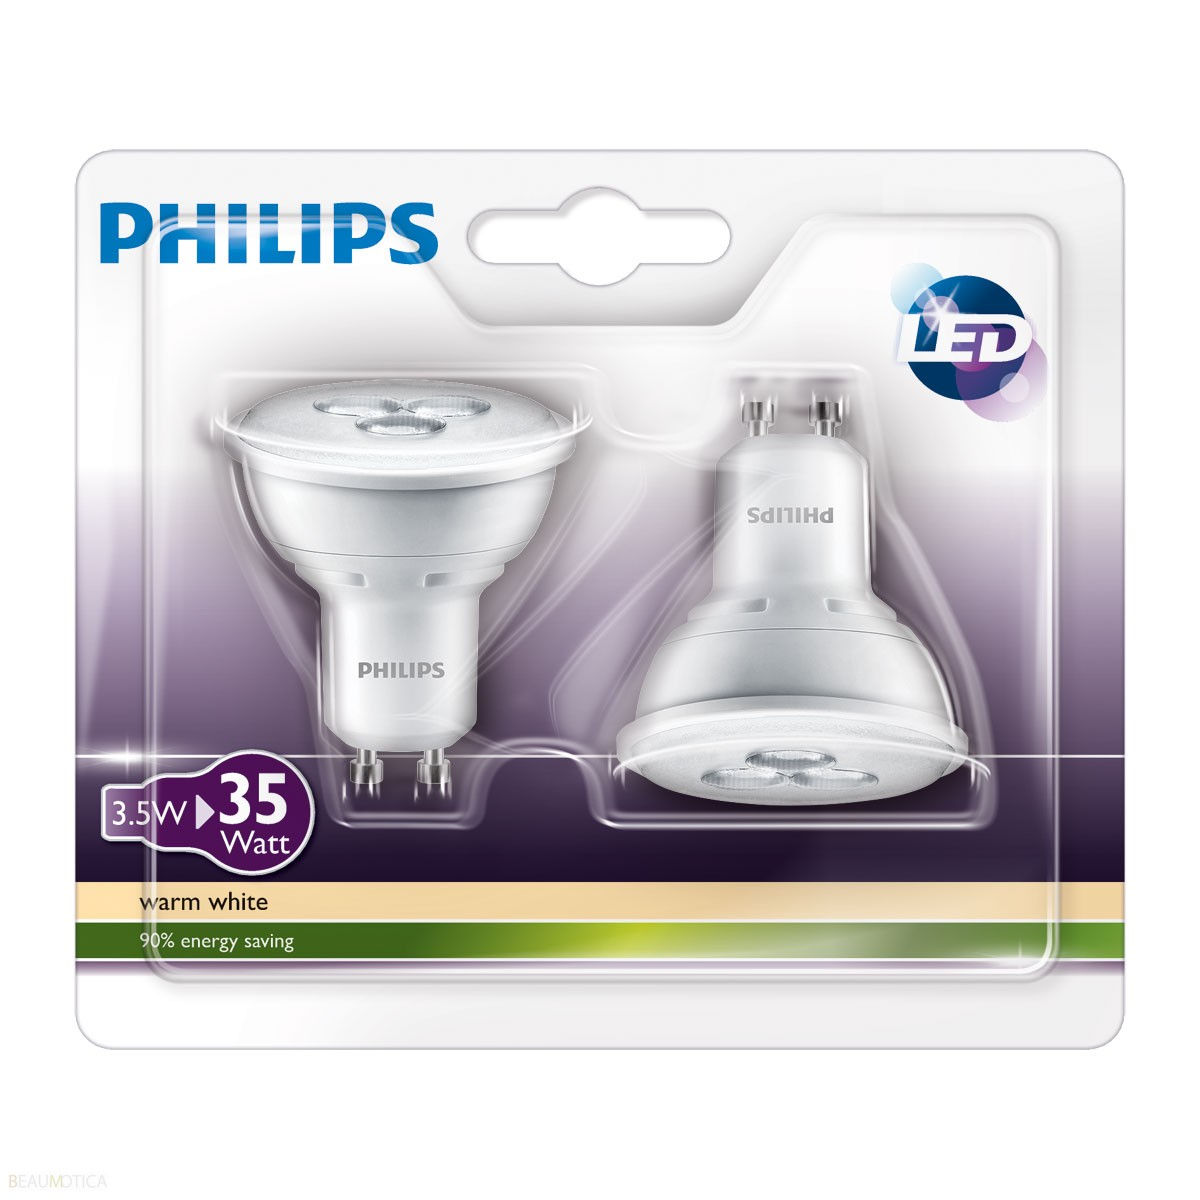 led lampen philips prijzen led verlichting watt. Black Bedroom Furniture Sets. Home Design Ideas